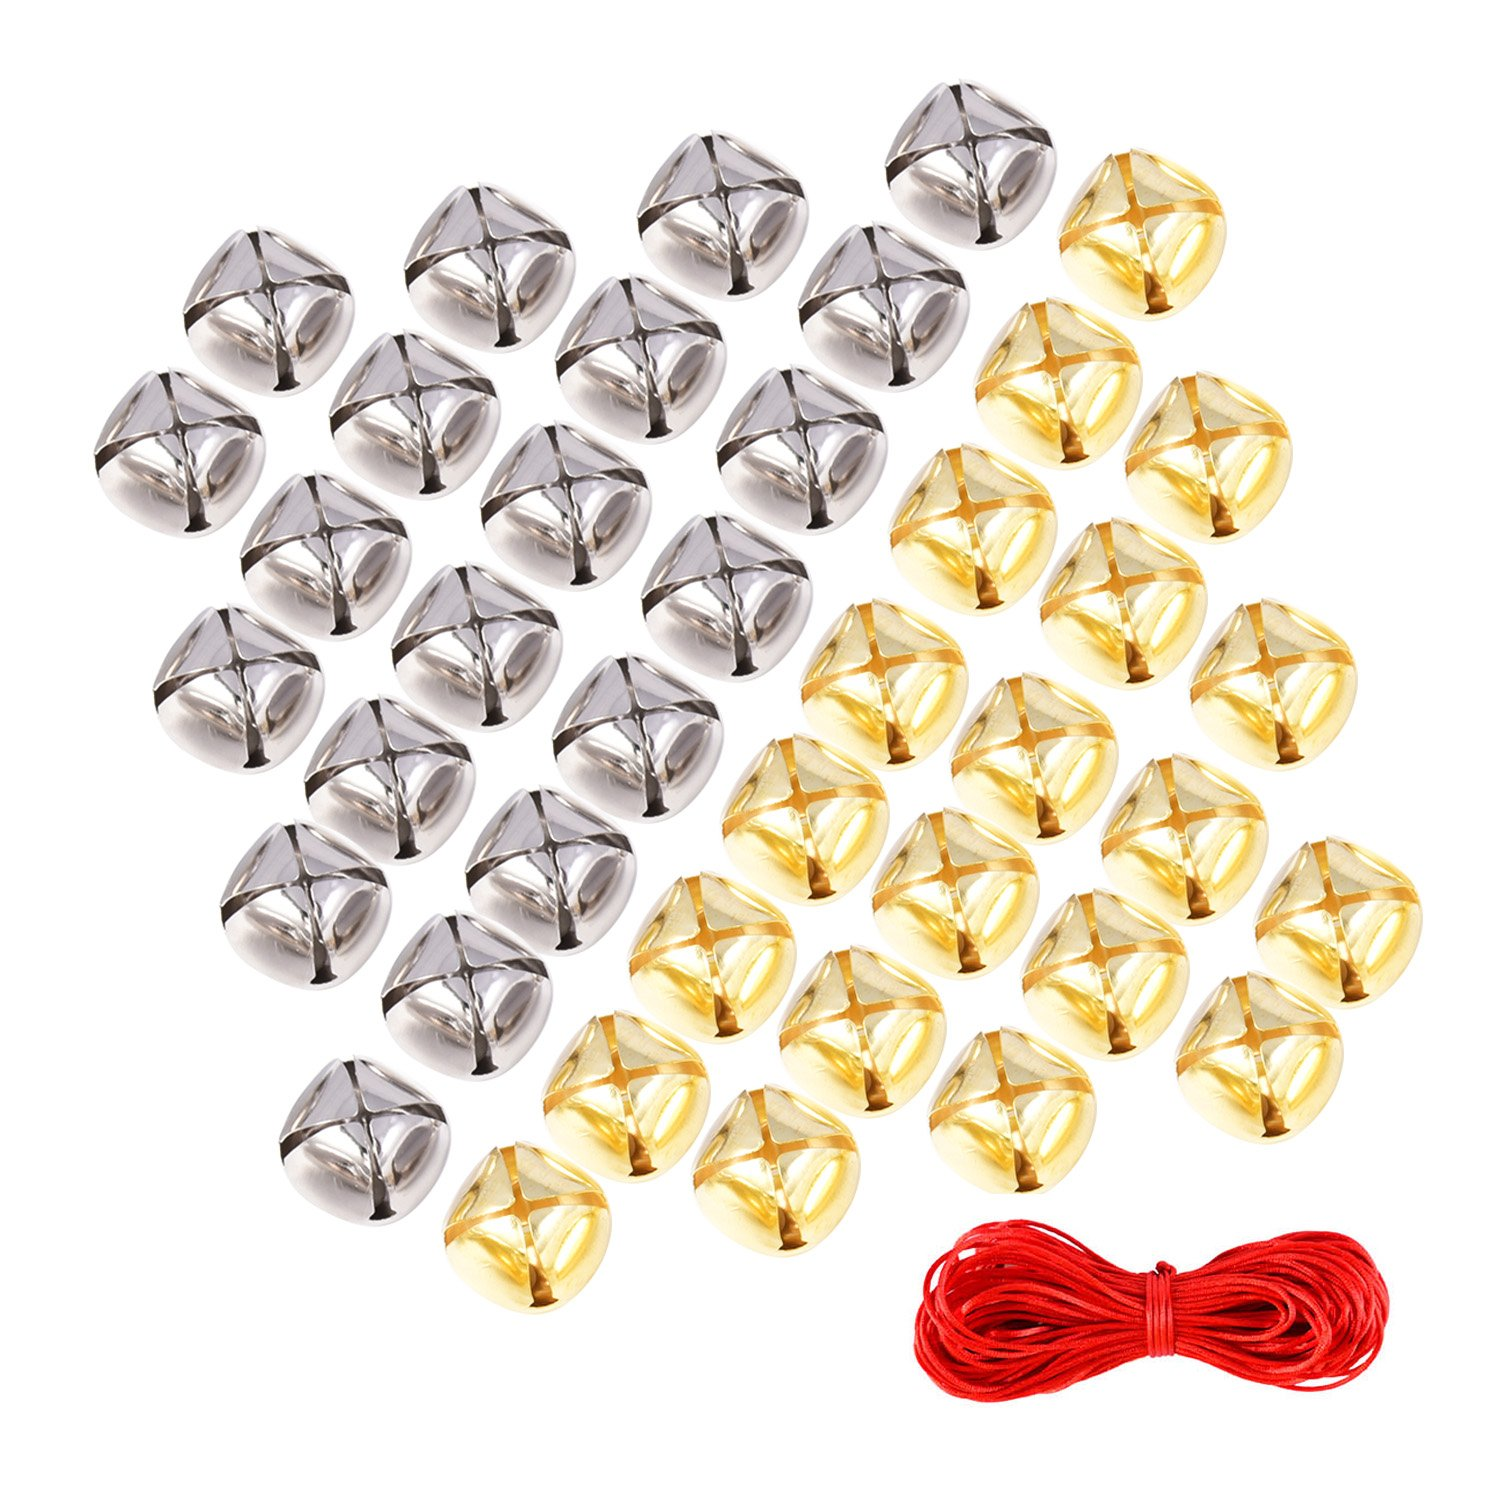 1 Inch Jingle Bells Craft Bells Christmas for Festival Decoration DIY Craft with 20 m Red Cord, 60 Pieces, Gold and Silver Sumind